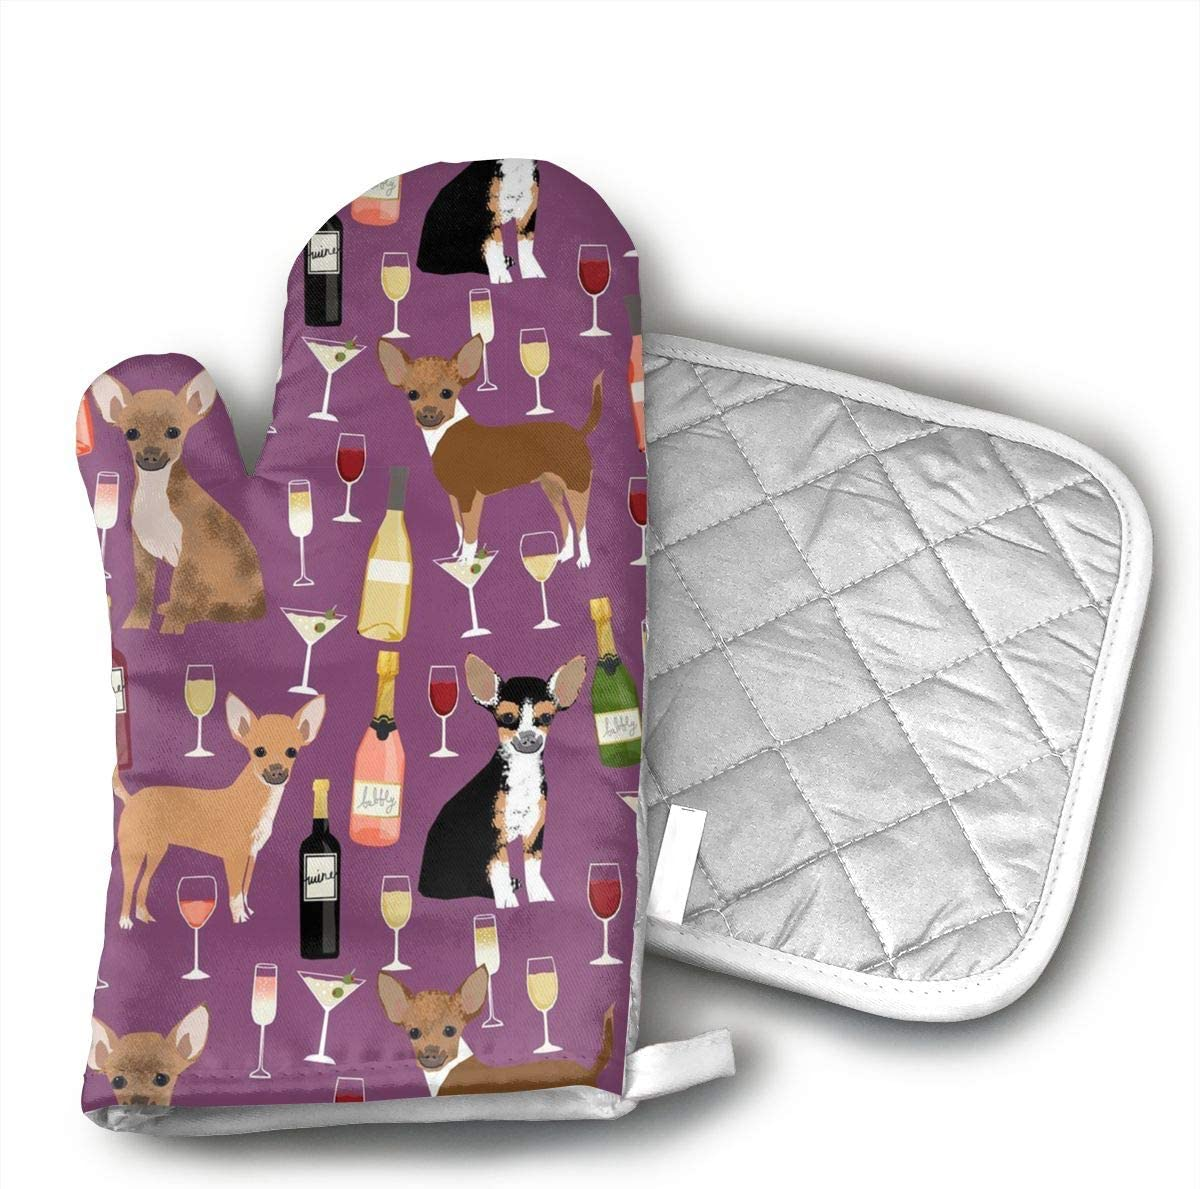 QEDGC Chihuahua Wine Champagne Cocktails Cute Dog Breed Oven Mitts Non-Slip for Home Kitchen Cooking Barbecue Microwave for Women/Men Machine Washable BBQ